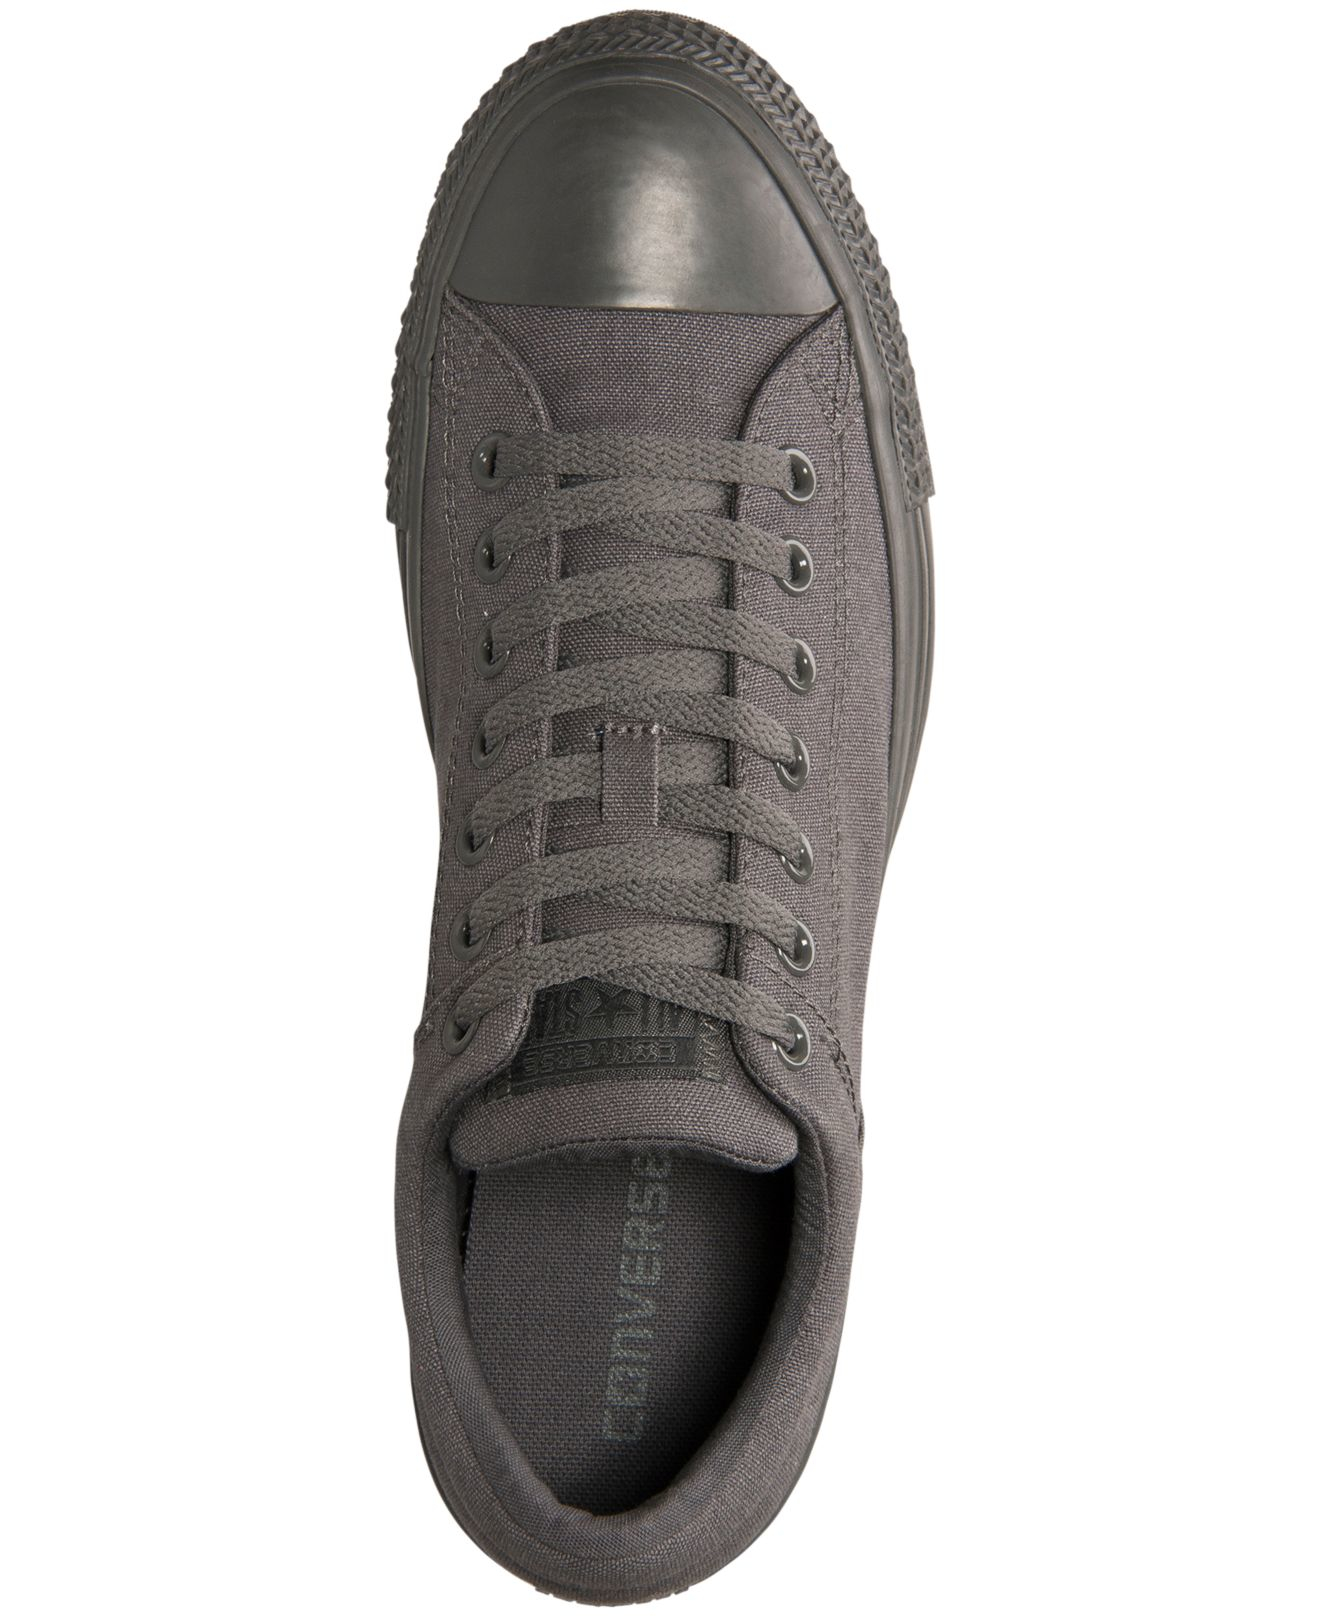 7cb16b506a02 ... order lyst converse mens chuck taylor street ox casual sneakers from  25fac 1b914